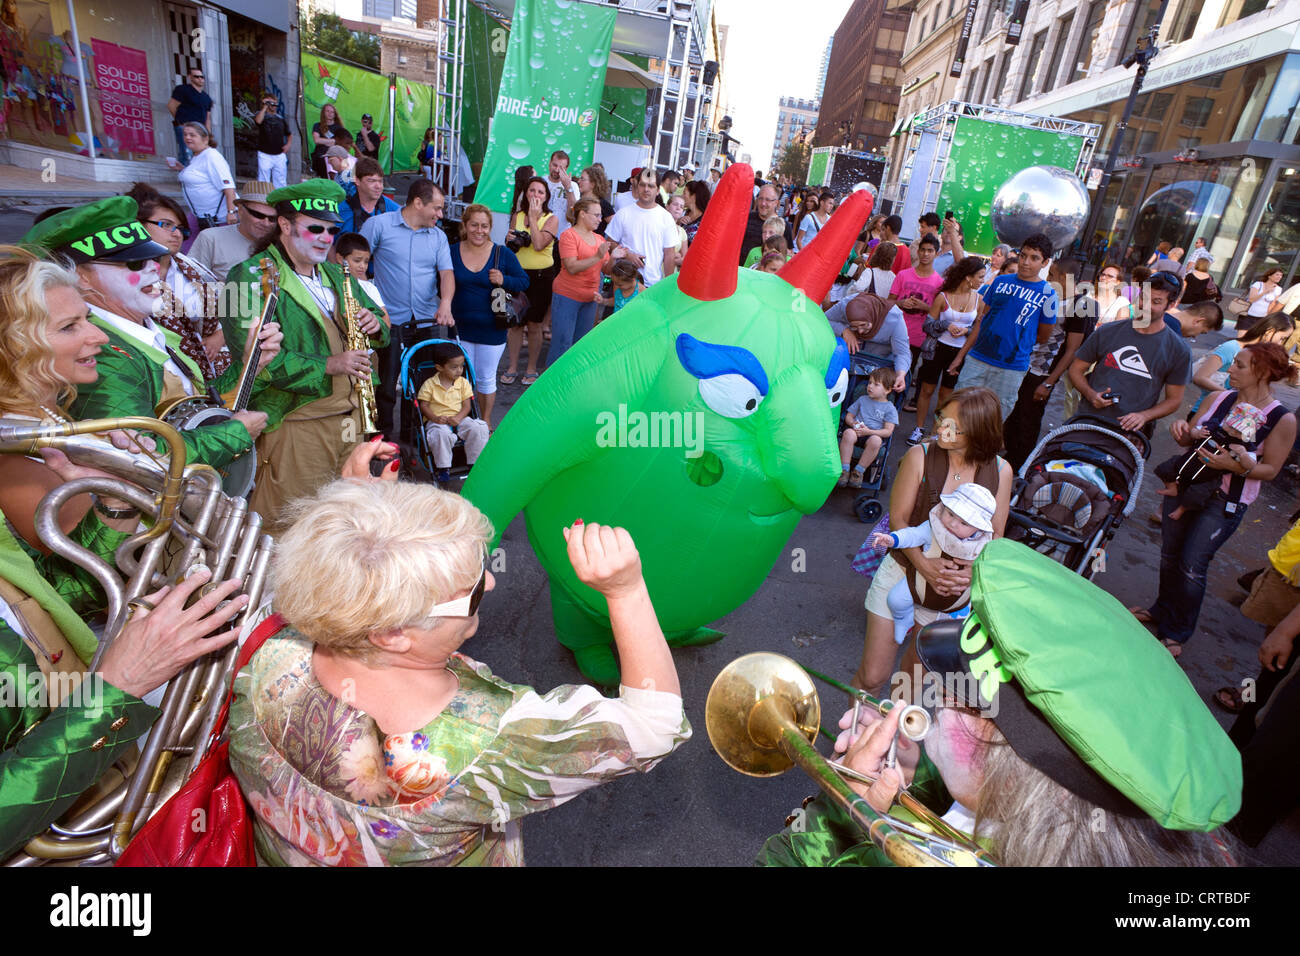 Victor the mascot dancing amongst the crowd during the Just for Laughs Festival in Montreal, province of Quebec, - Stock Image